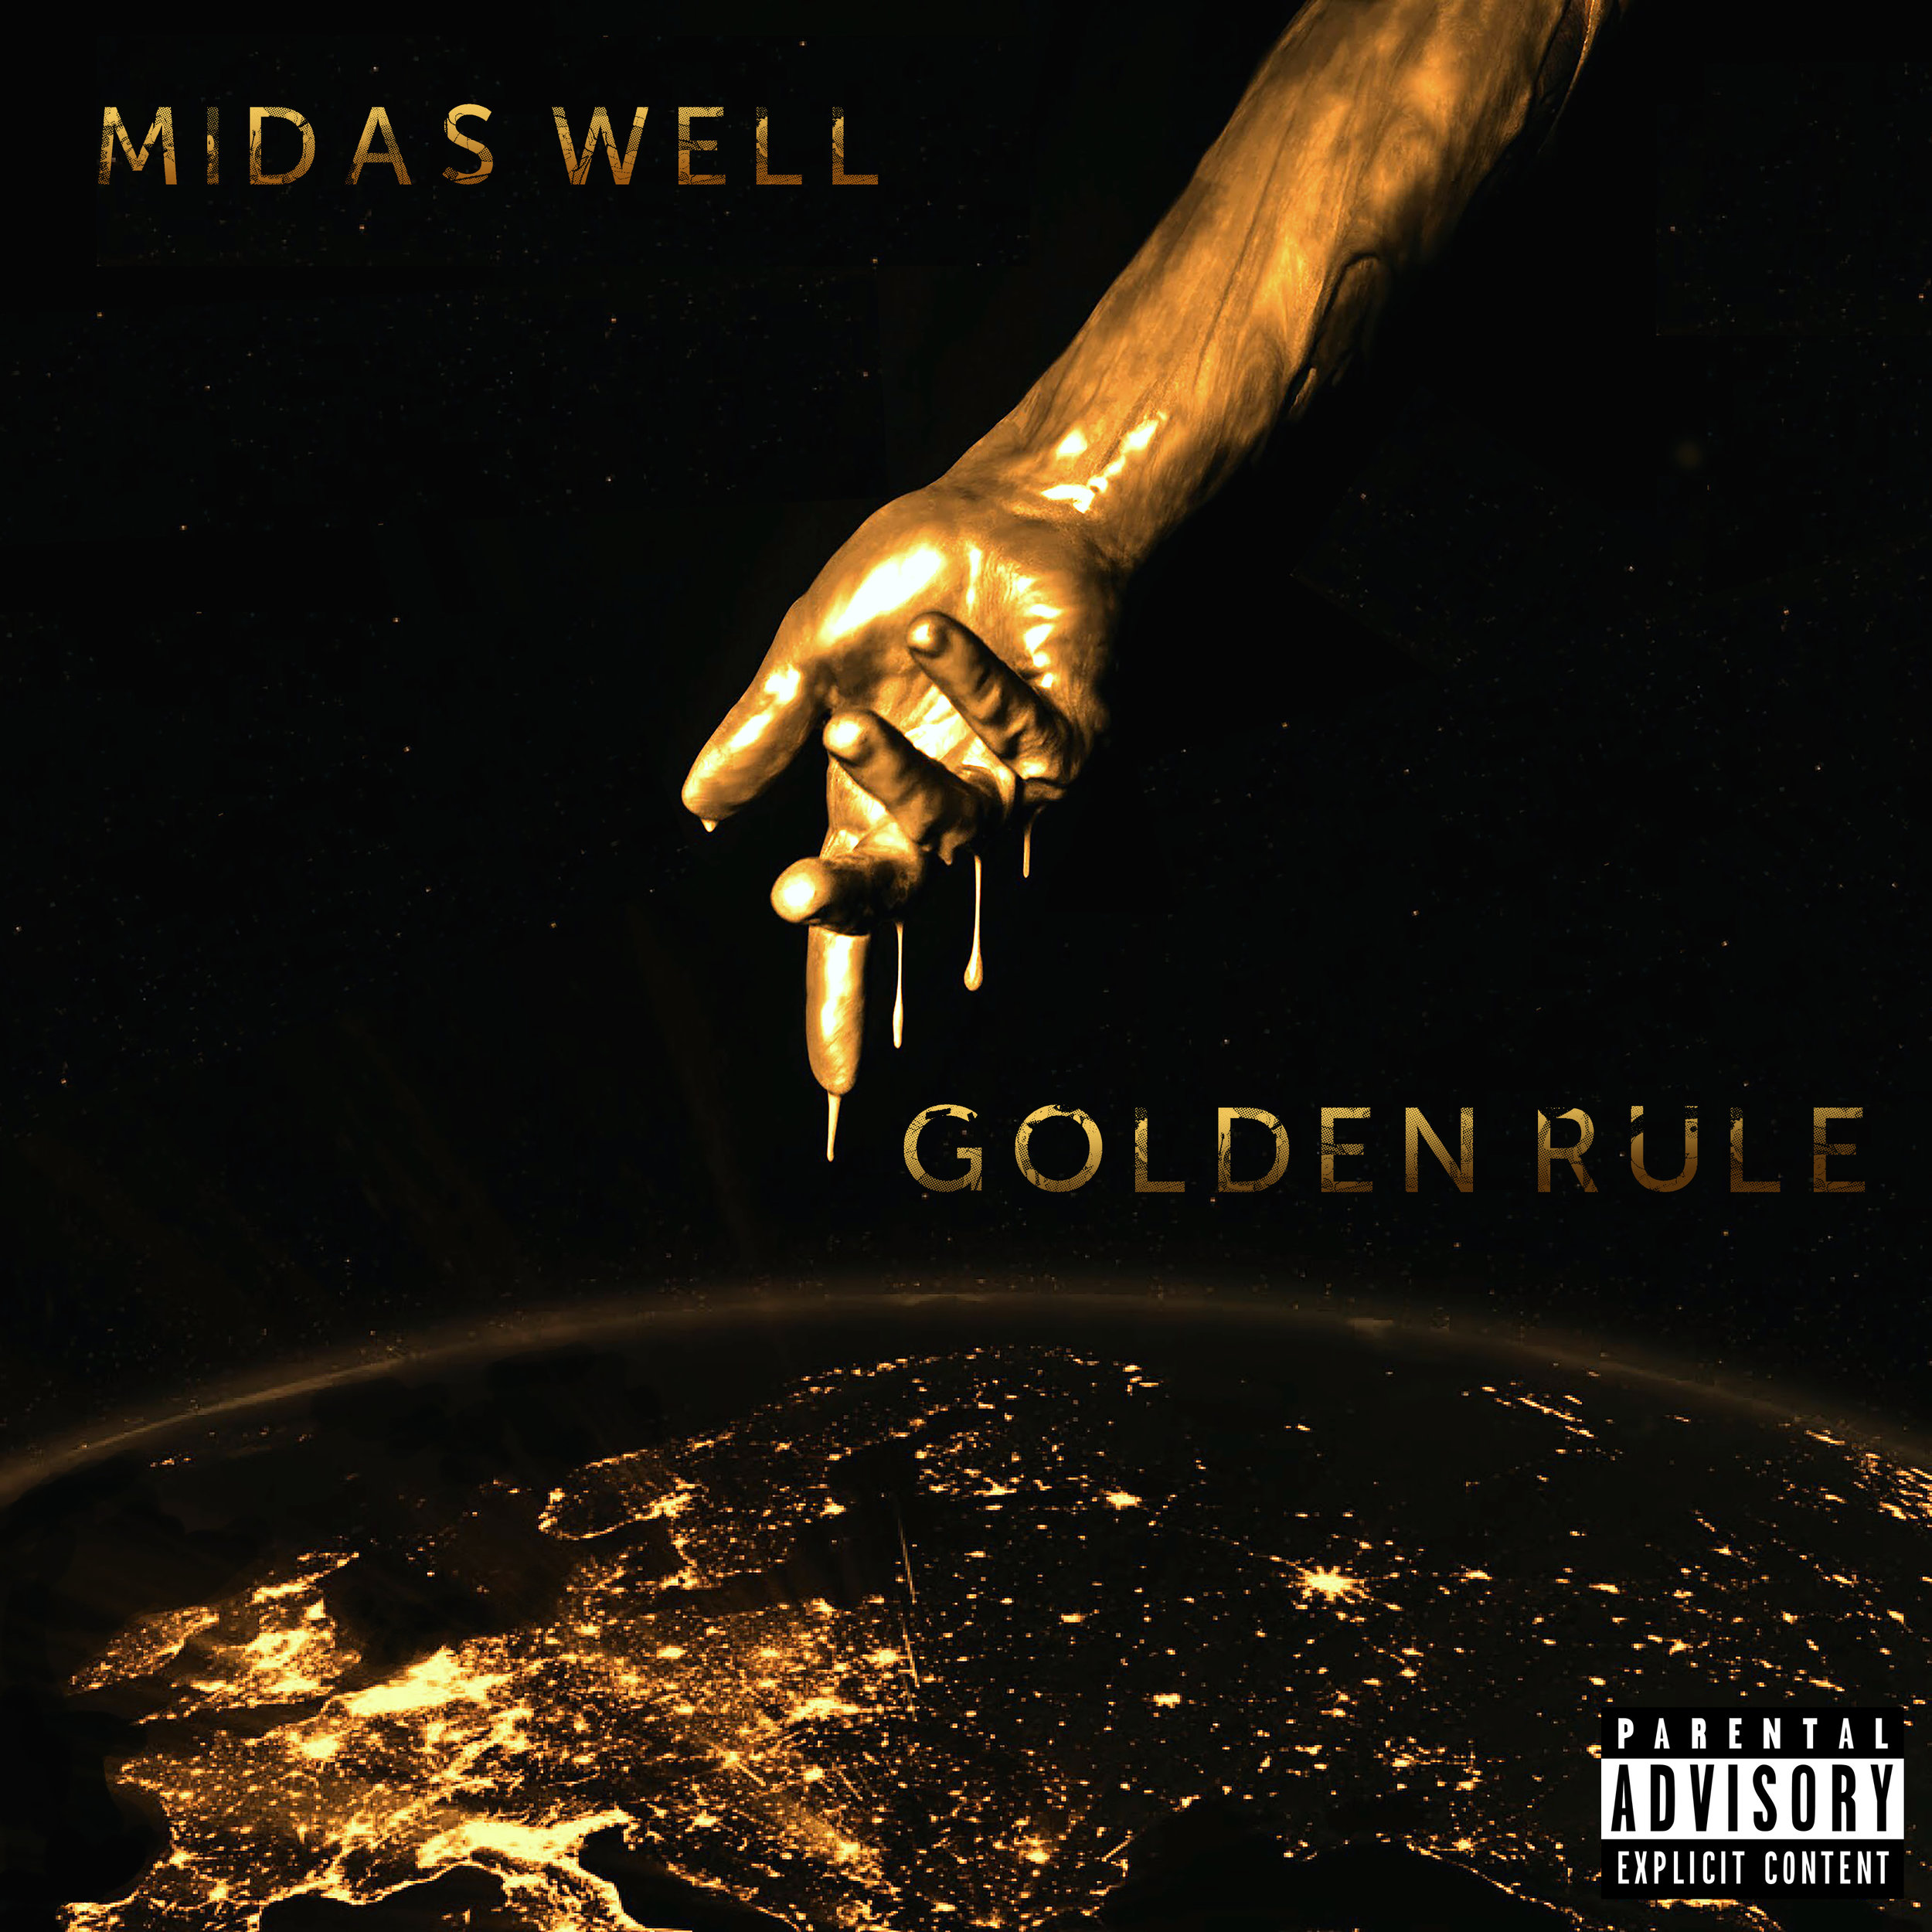 Look for Midas Well's debut album,  Golden Rule , available now.